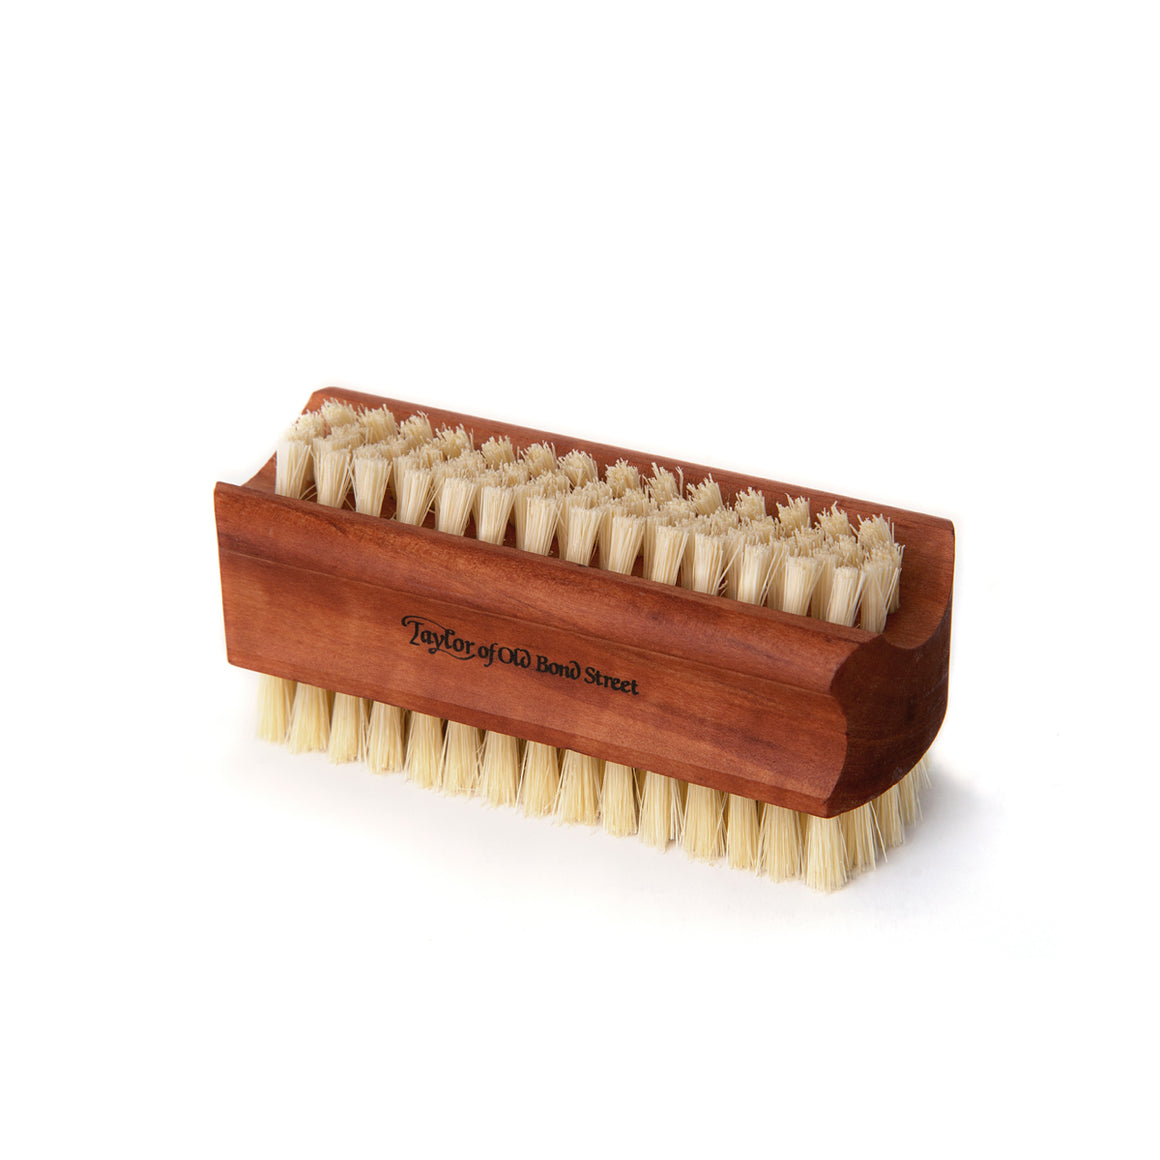 Medium Pearwood Pure Bristle Nail Brush